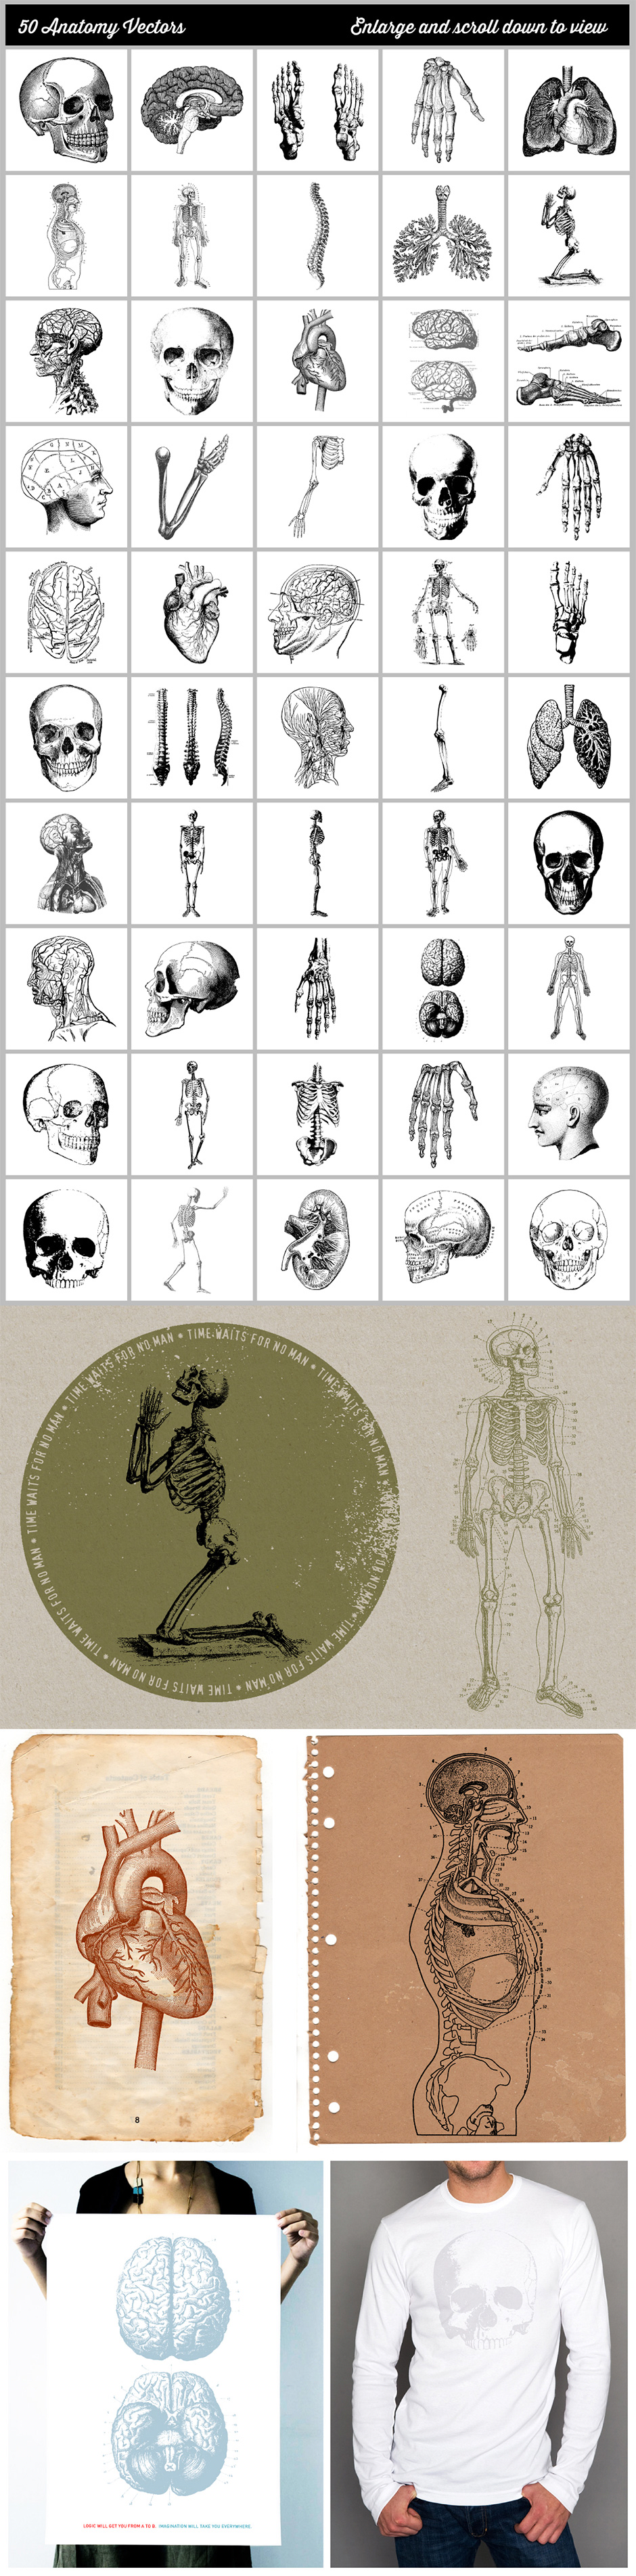 A Vast Collection of 50 Fully Editable Vintage Anatomy Vectors